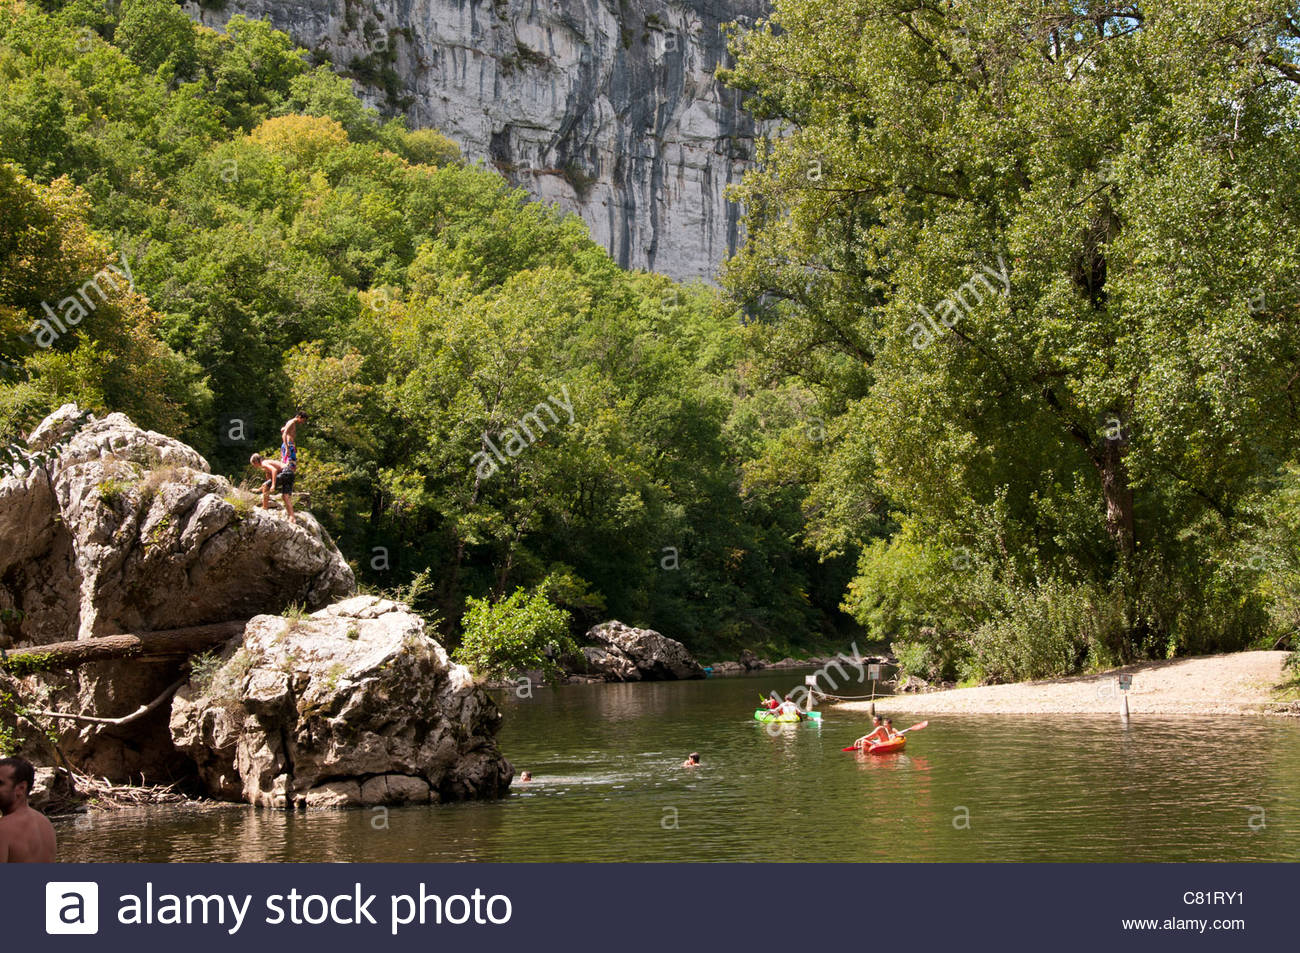 People Swimming And Canoeing In The River Of Aveyron Stock Photo.